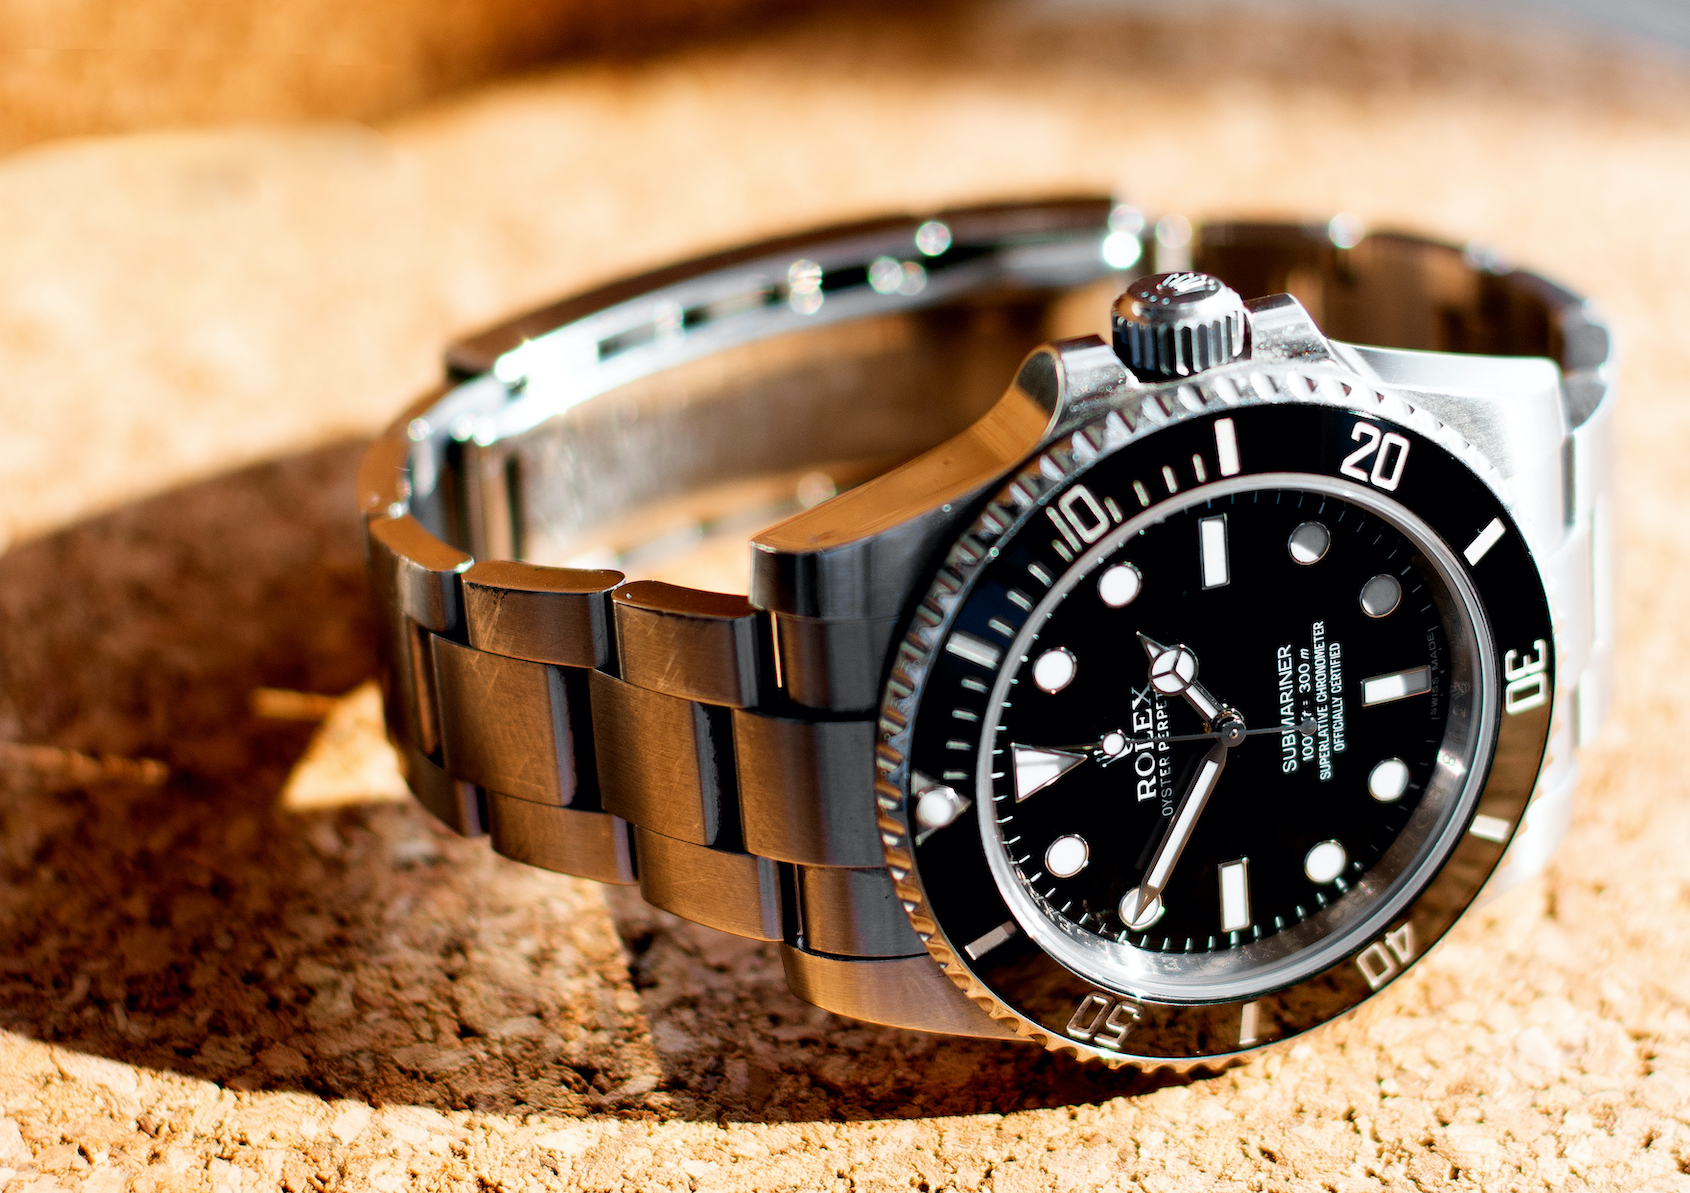 IN-DEPTH: Gone but not forgotten – the discontinued Rolex Submariner ref. 114060